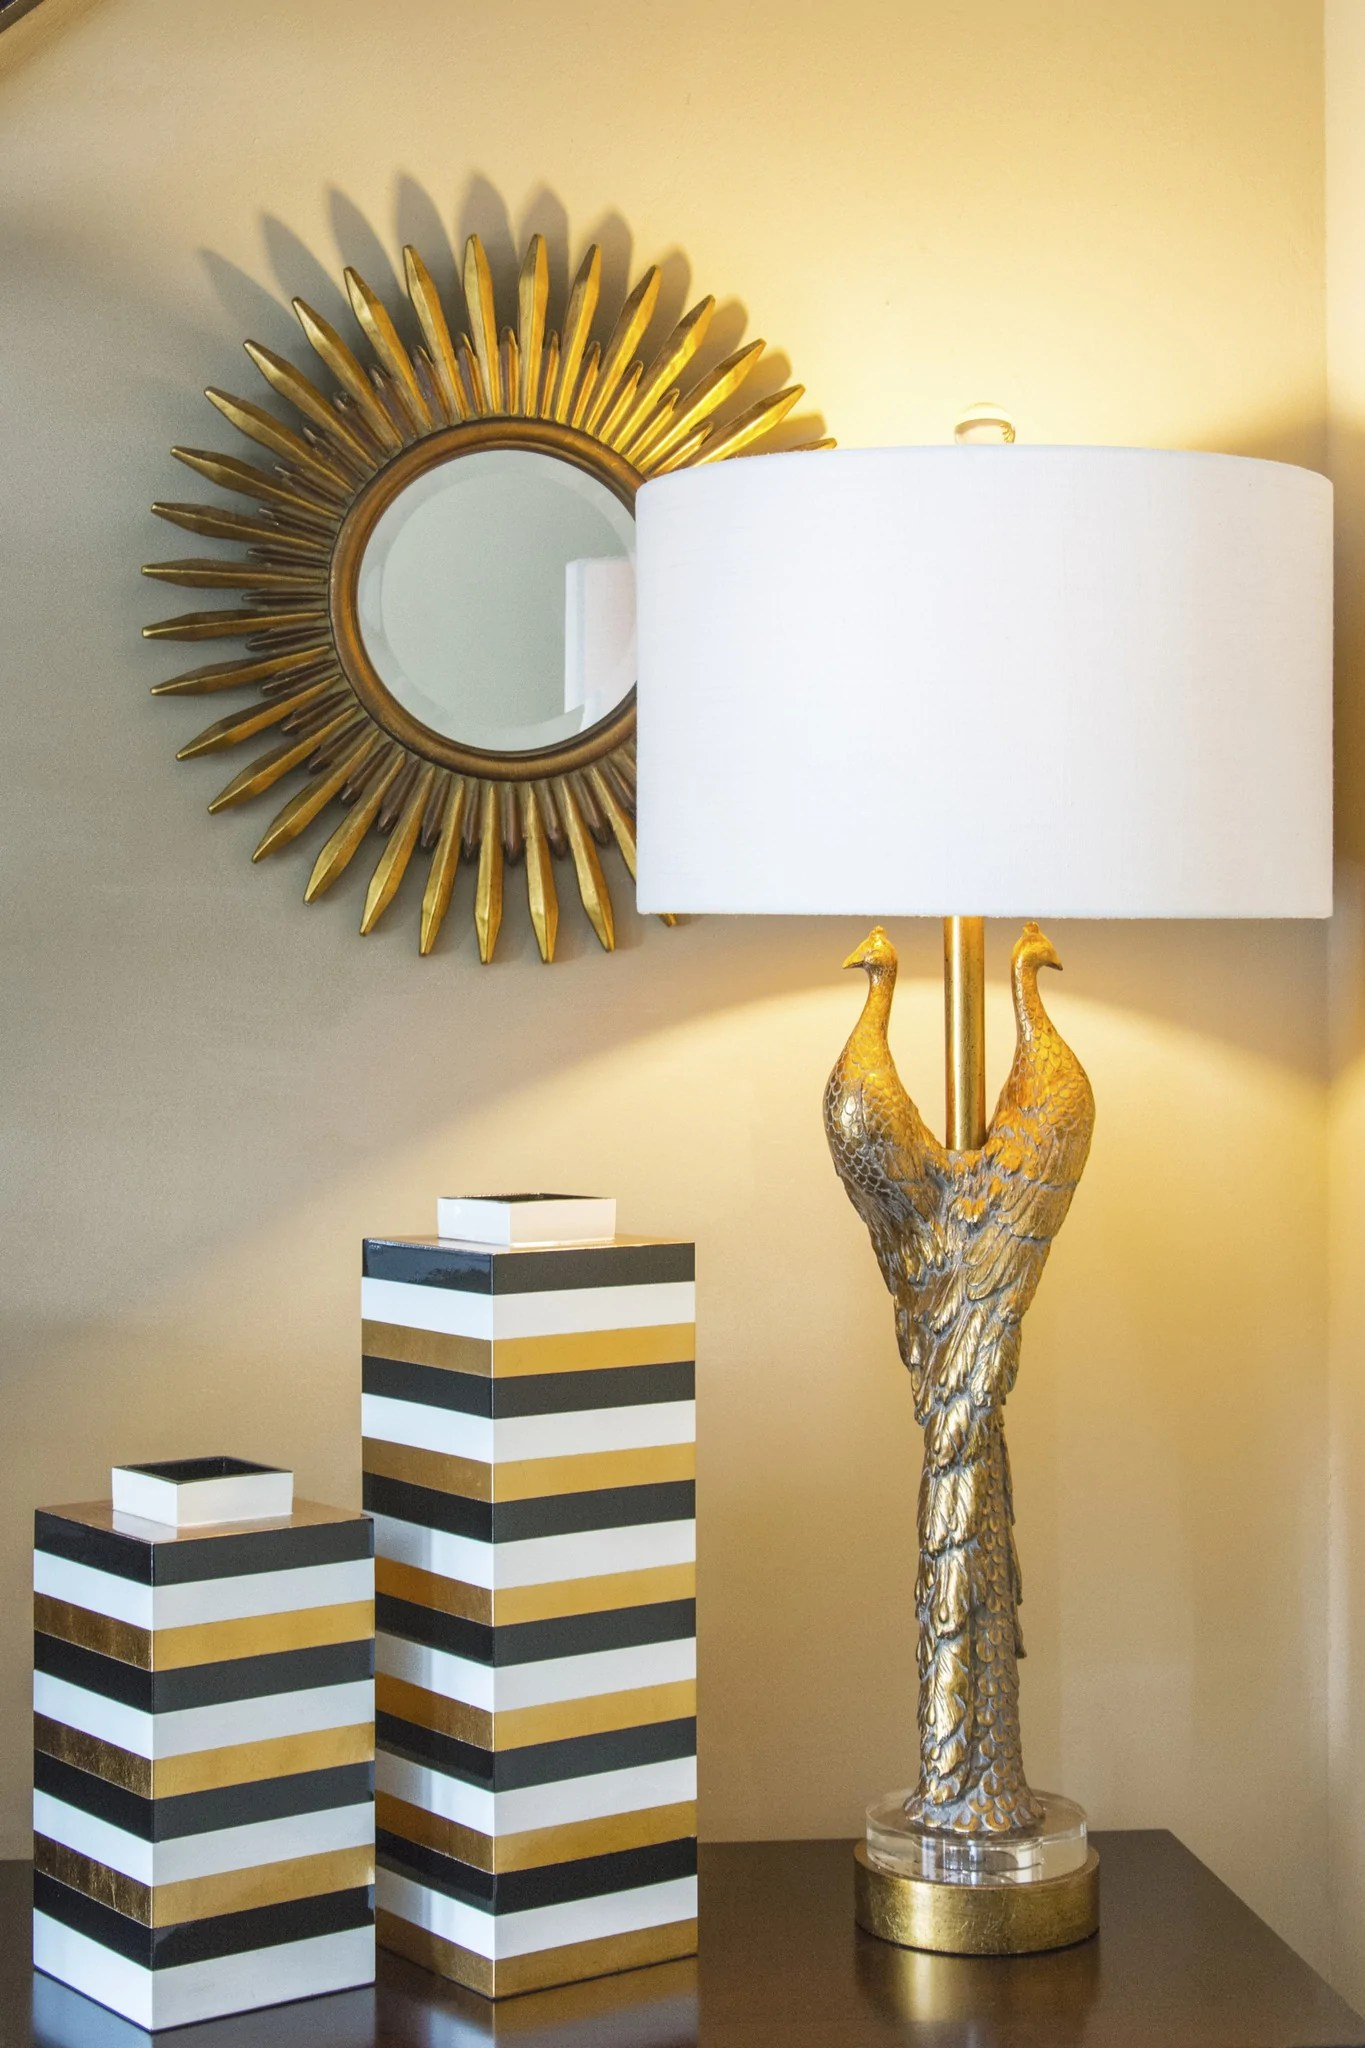 Golden Peacock Table Lamp Design By Couture Lamps BURKE